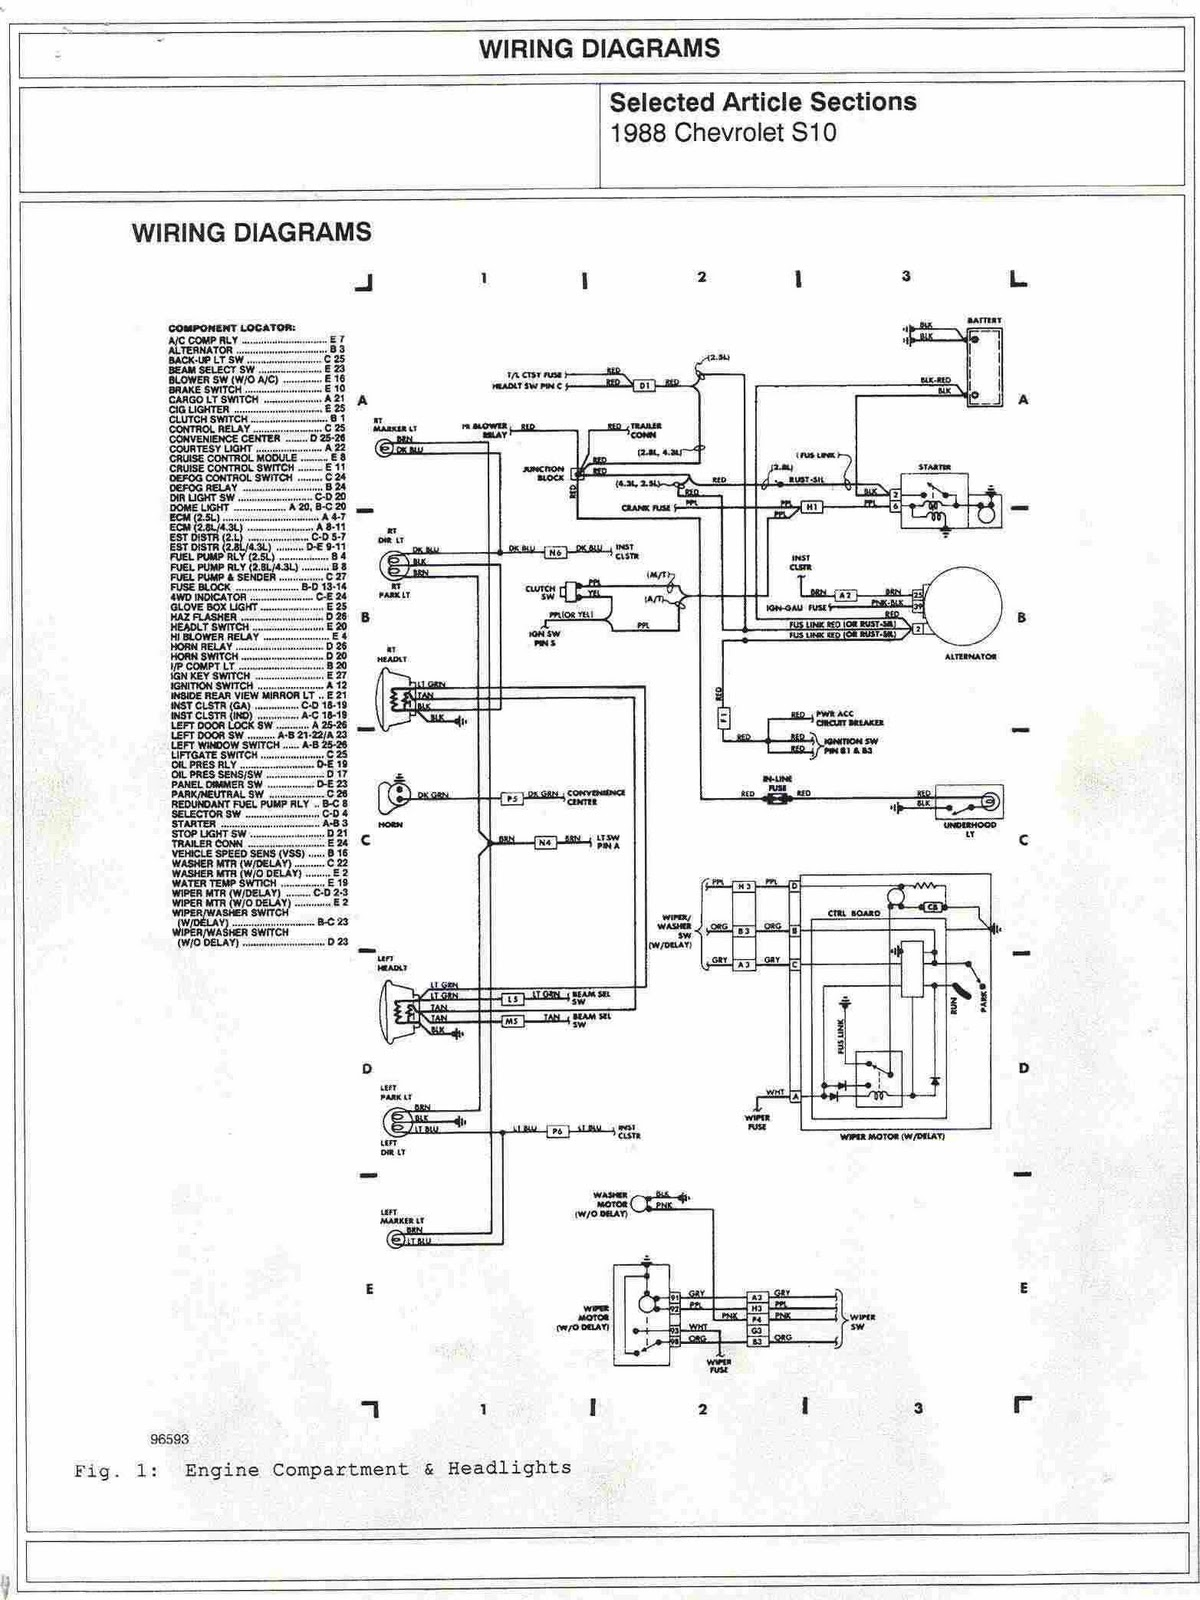 1988+Chevrolet+S10+Engine+Compartment+and+Headlights+Wiring+Diagrams 95 s10 wiring diagram 95 tahoe wiring diagram \u2022 wiring diagrams S10 Wiring Diagram for Gauges at crackthecode.co